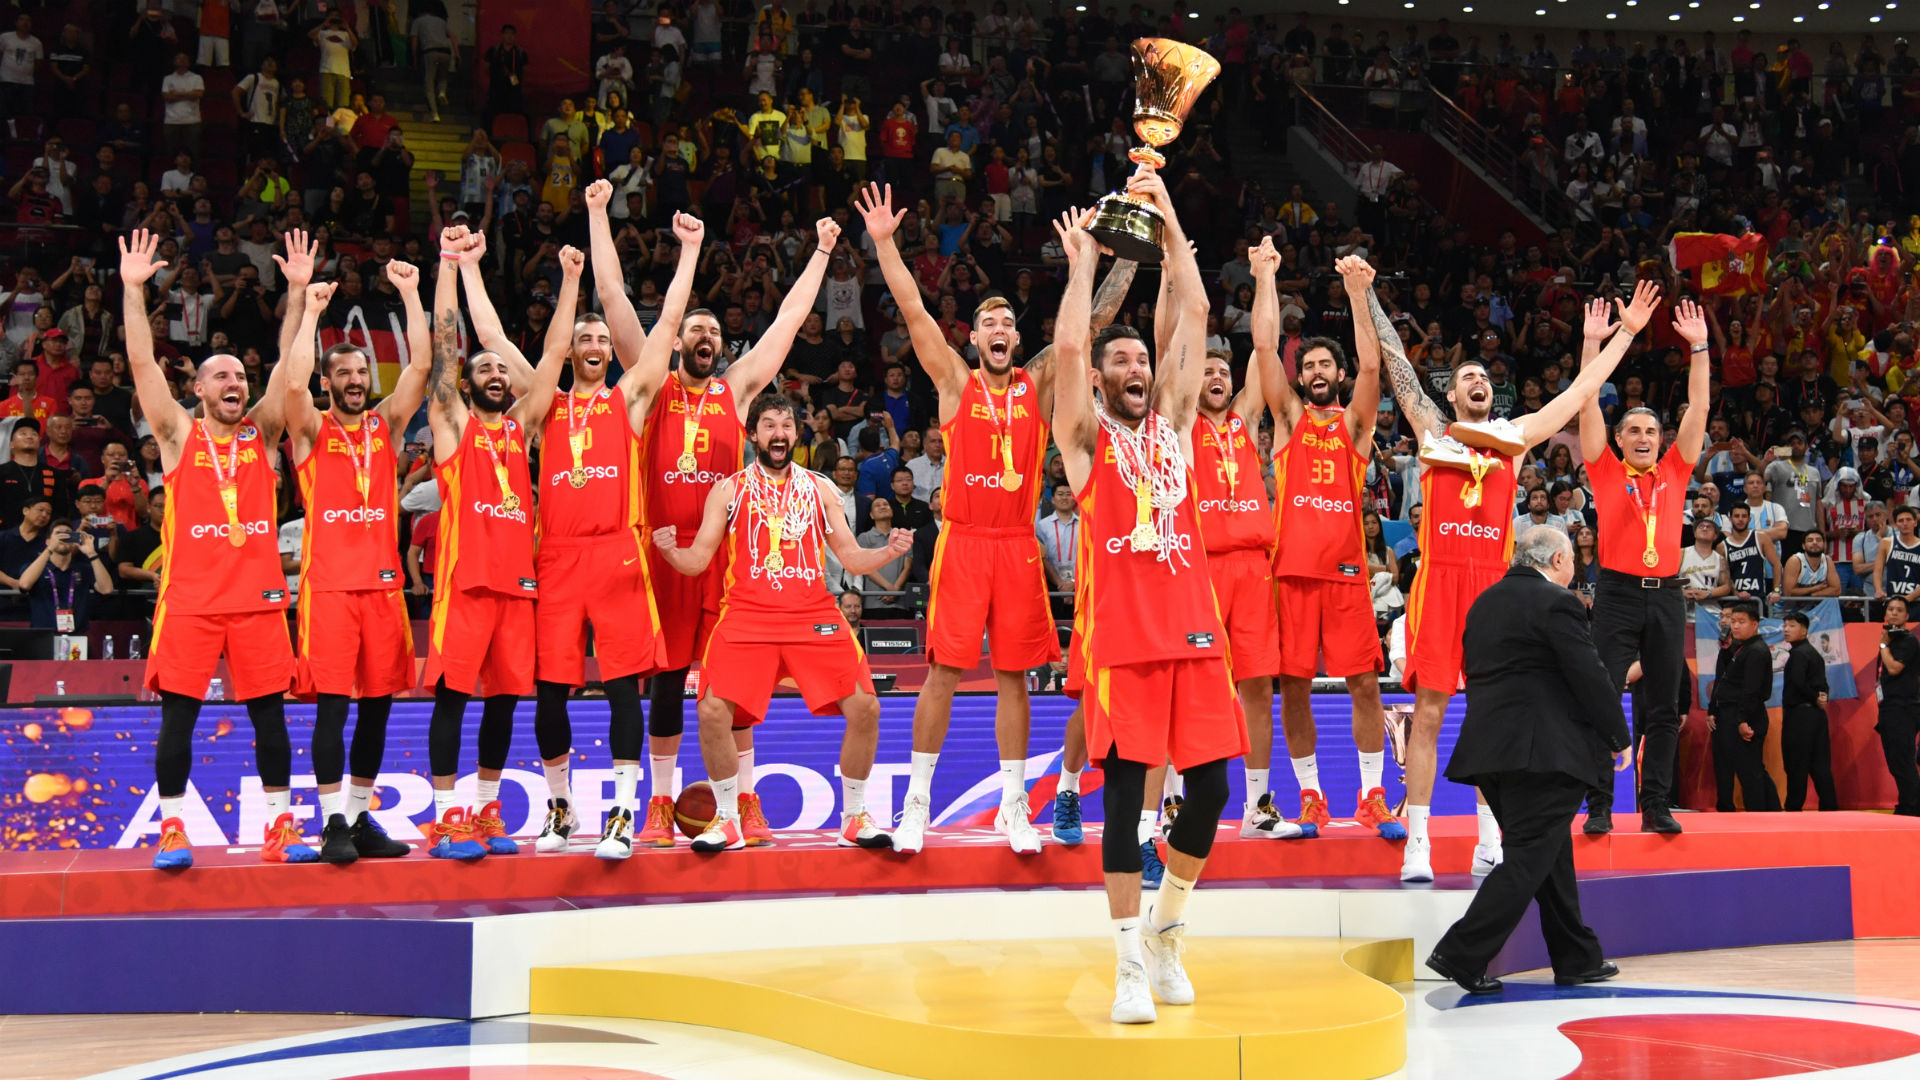 FIBA Basketball World Cup 2019: Spain takes gold with 20-point win over Argentina